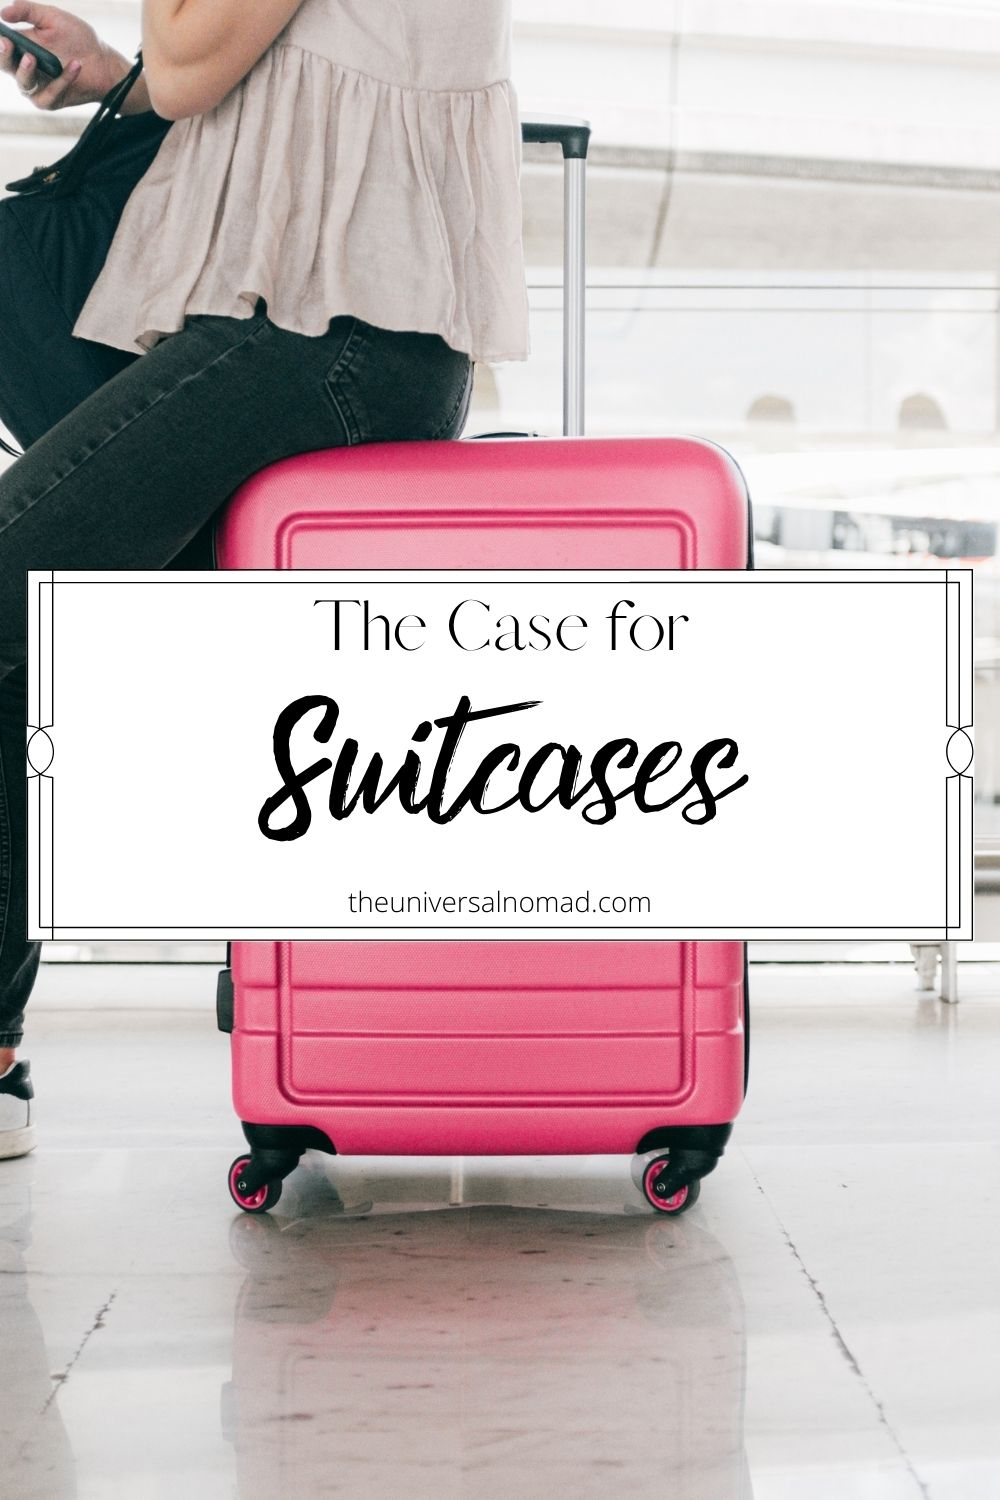 The Case for Suitcases